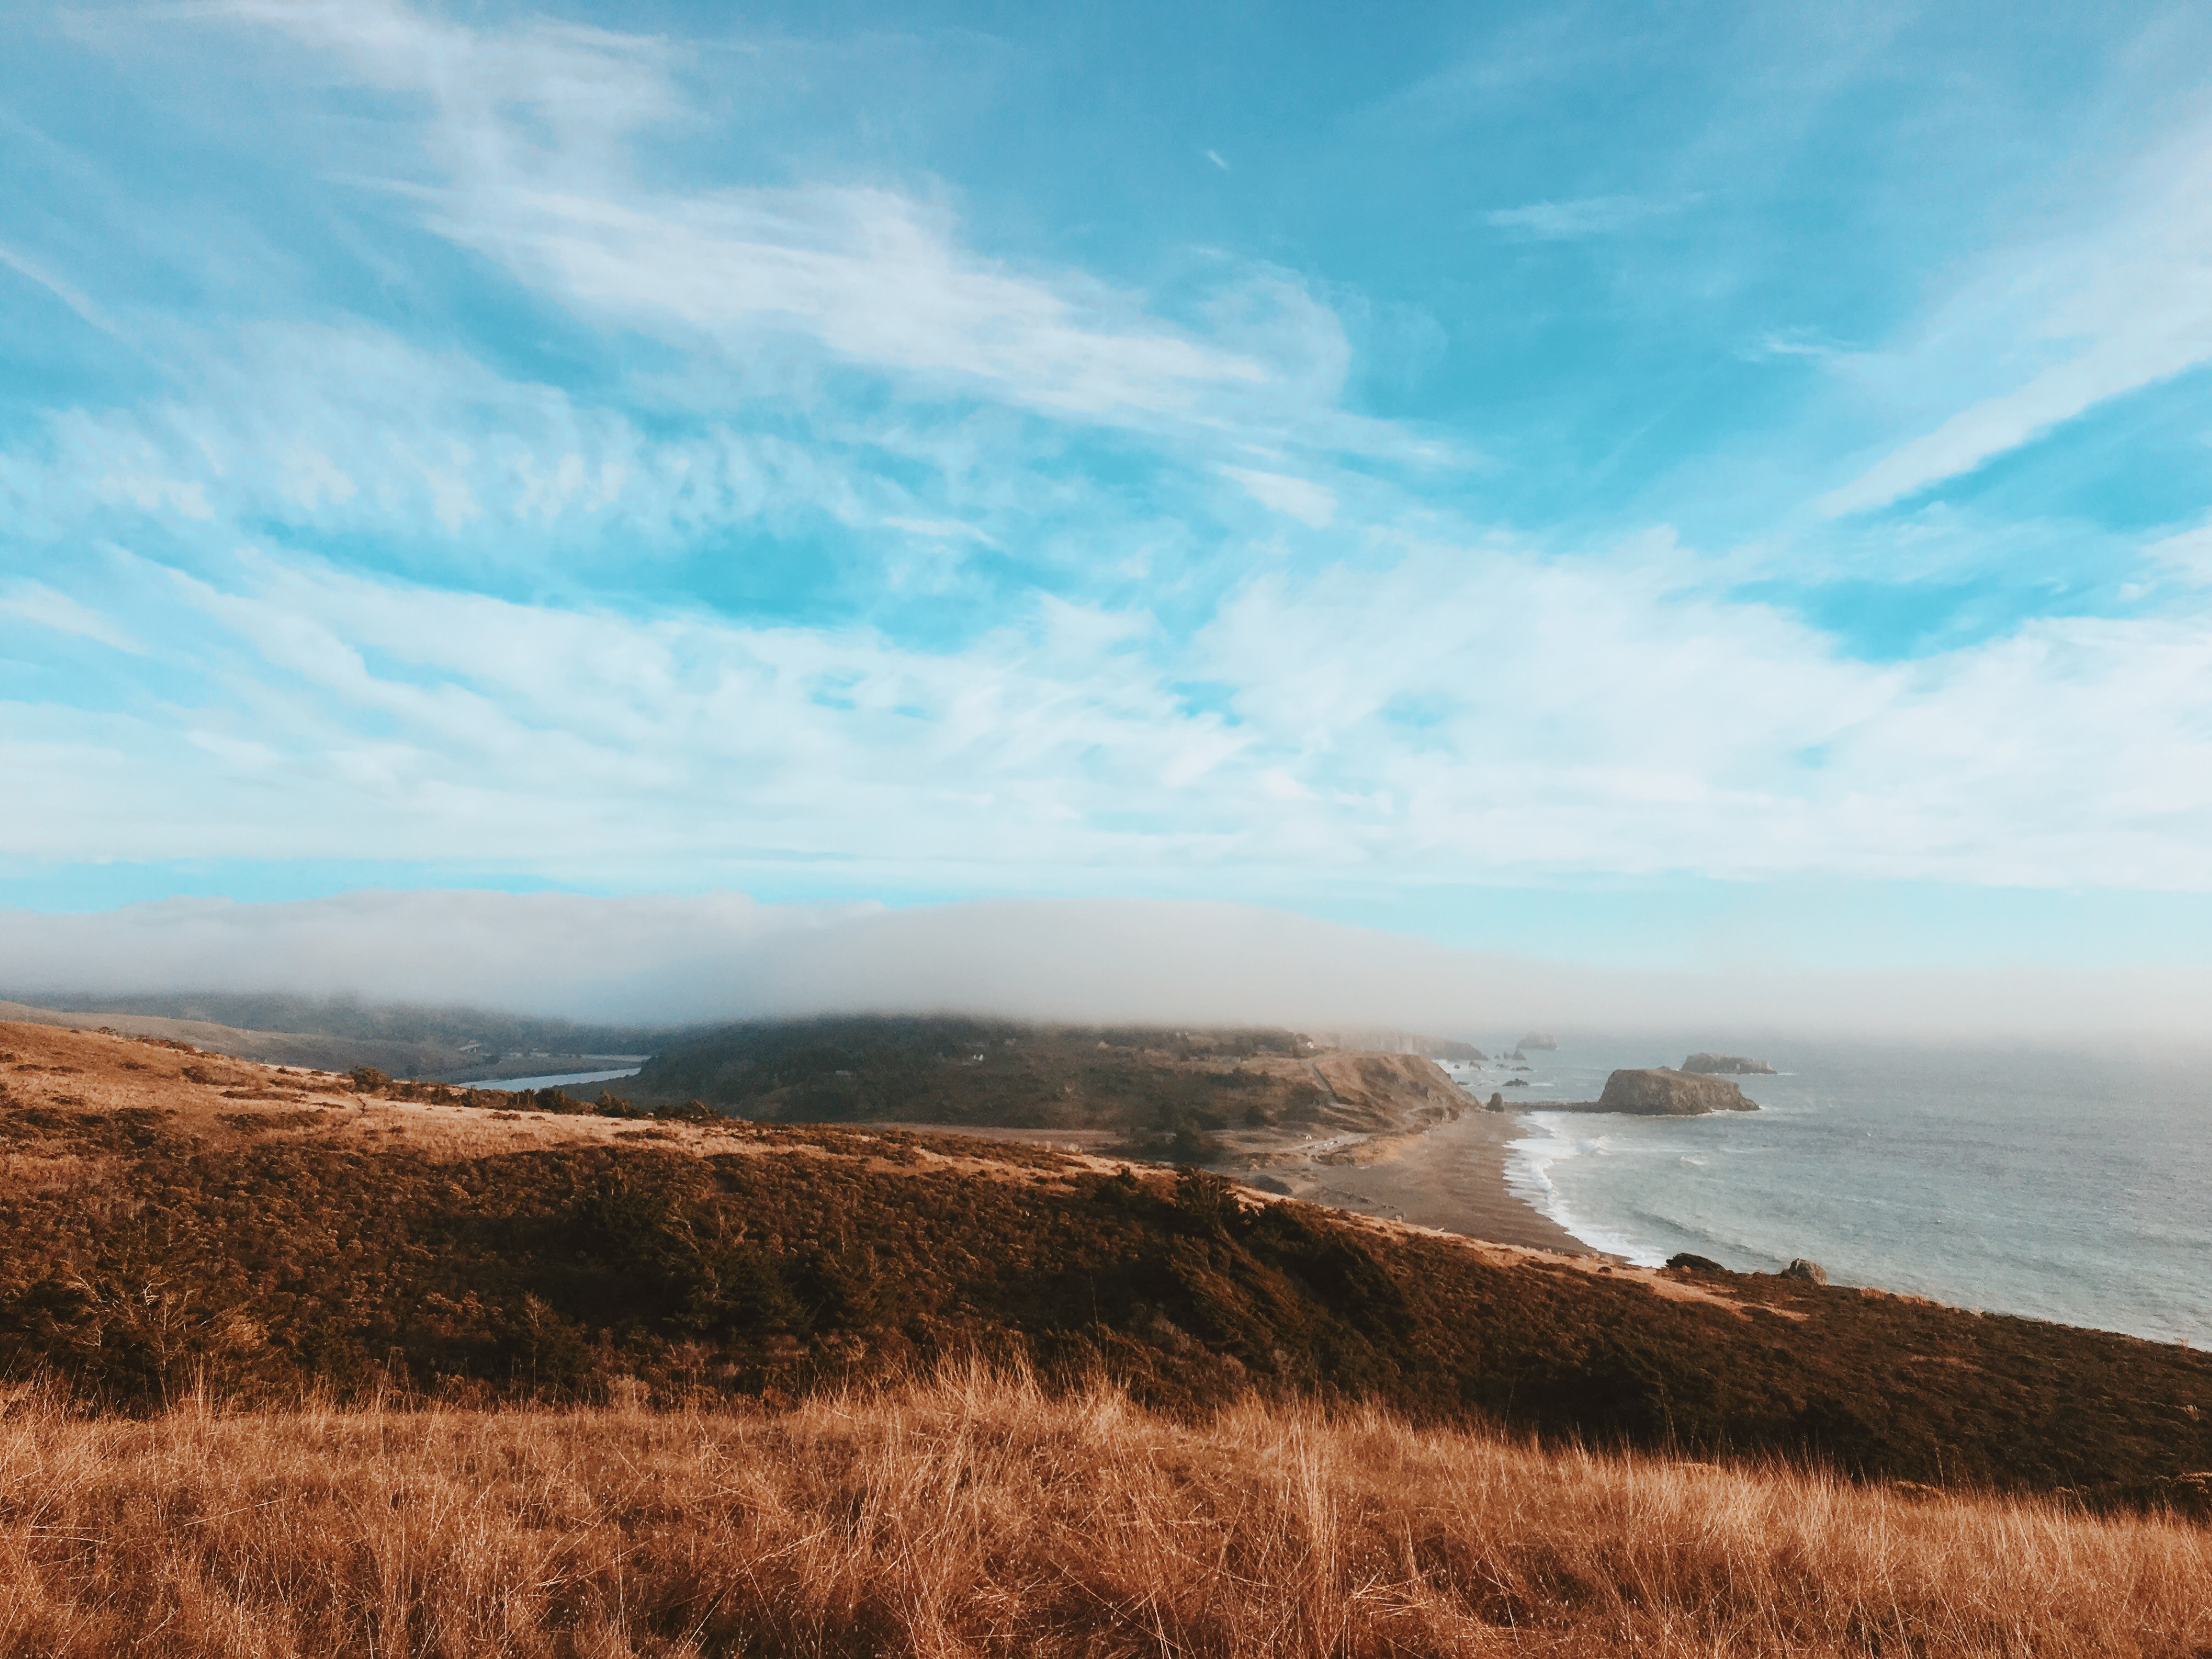 Hike the Jenner Headlands Preserve in Sonoma County, California. Photo by Sierra Downey.